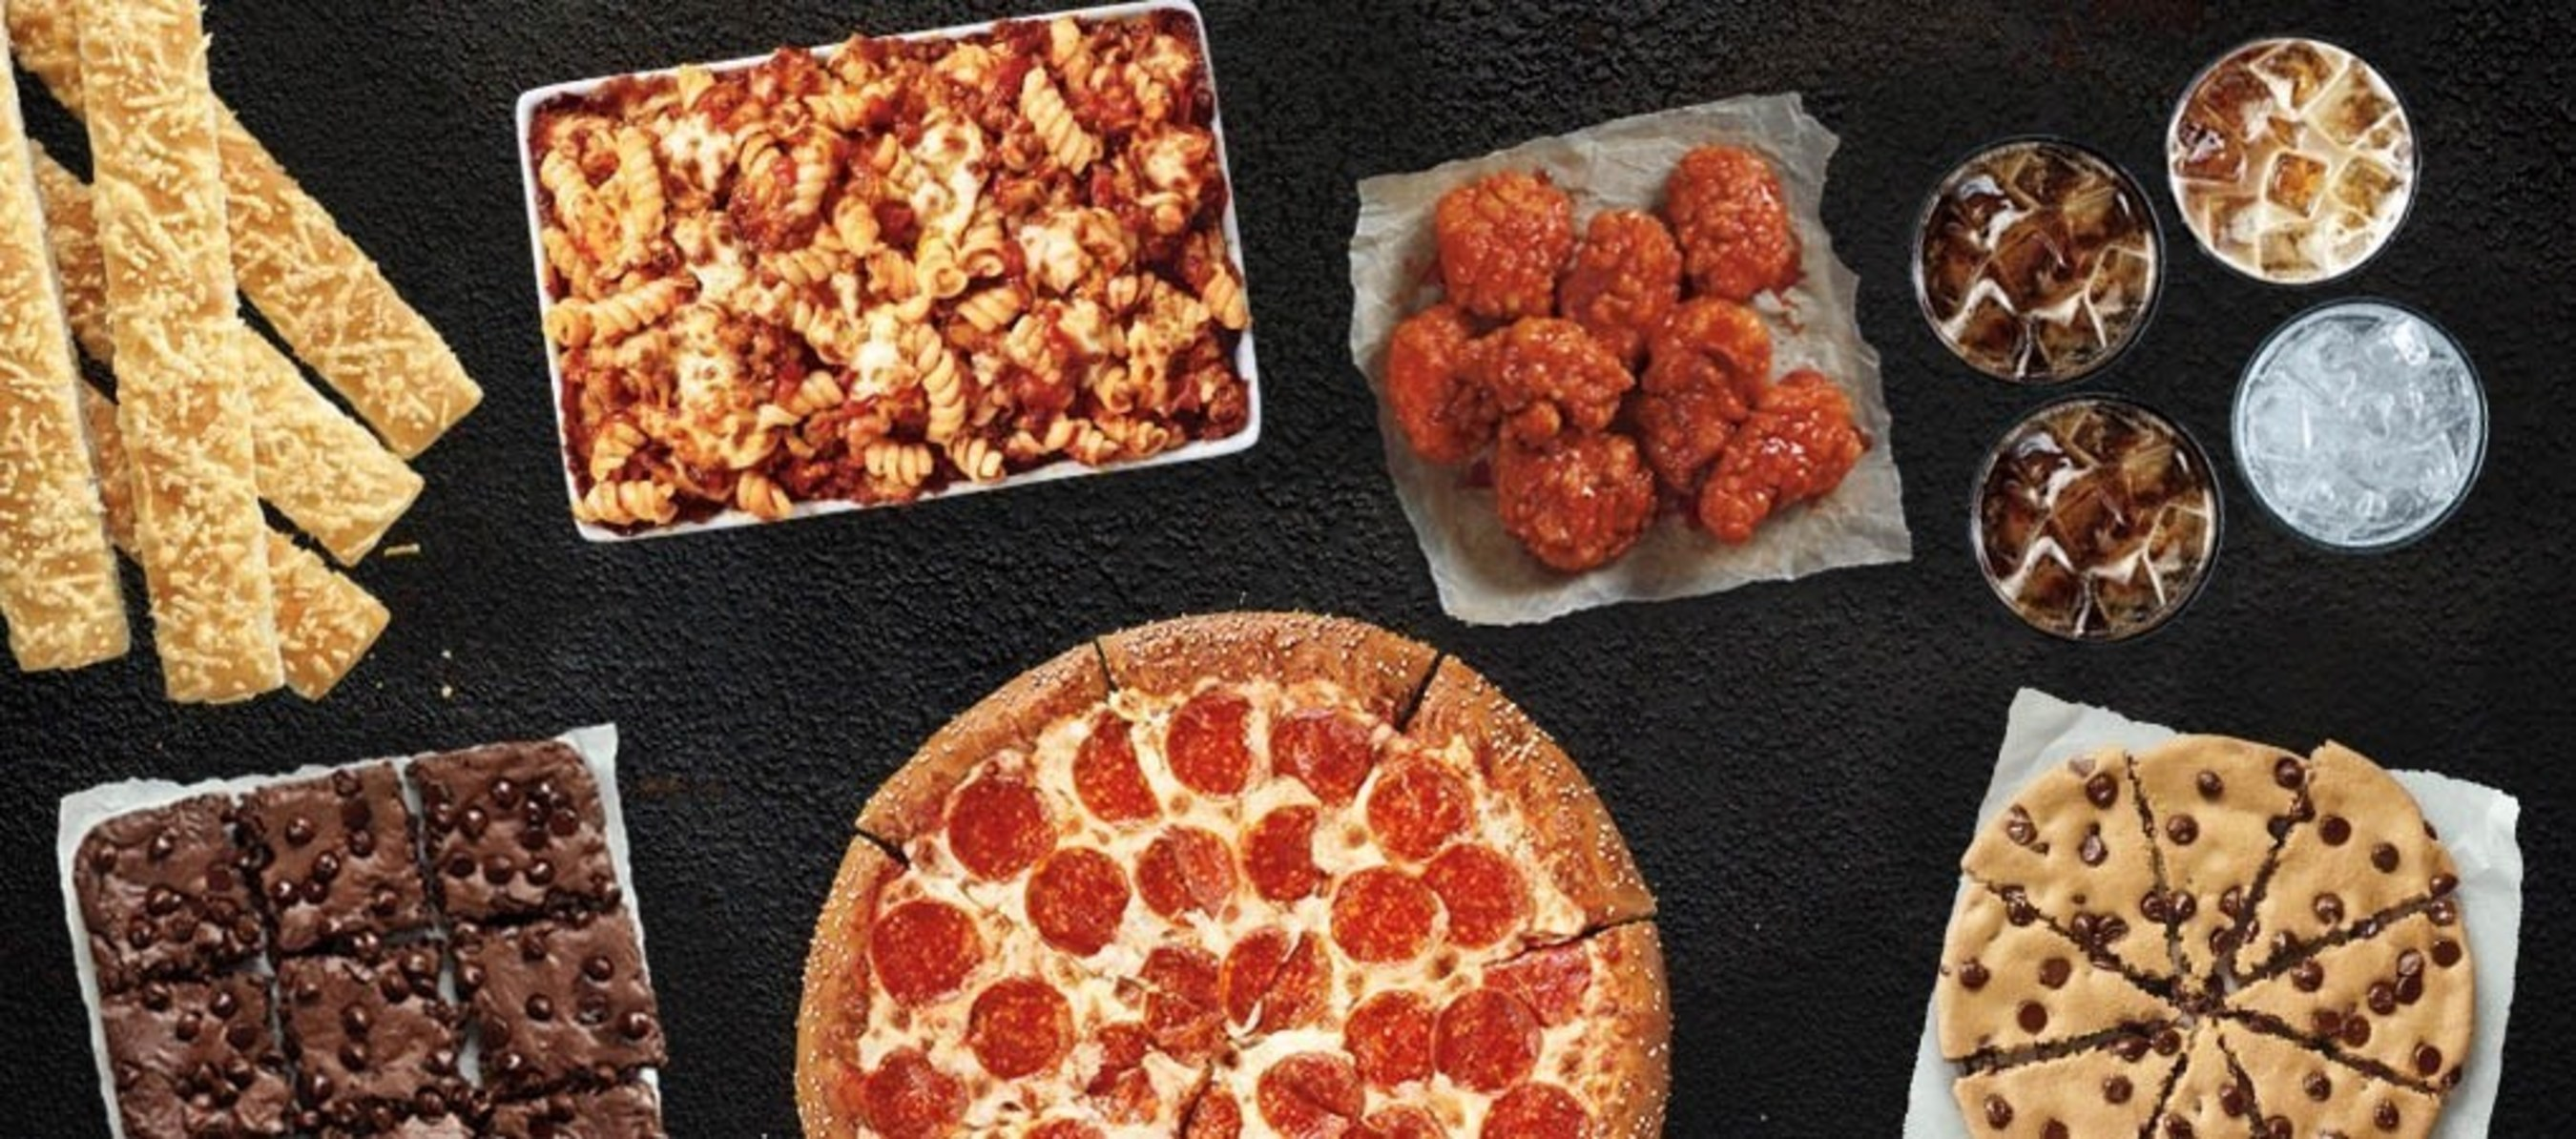 Available beginning Jan. 4, the Pizza Hut $5 Flavor Menu features a medium one-topping pizza, eight bone-out WingStreet(R) Wings, the Ultimate Hershey's Chocolate Chip Cookie, Hershey's Triple Chocolate Brownie, Tuscani Pasta, a double order of breadsticks or flavor sticks and four 20-oz. Pepsi beverages for $5 each when ordering two or more. The $5 Flavor Menu arrives at a time when consumers are most looking and asking for value - the start of the New Year.